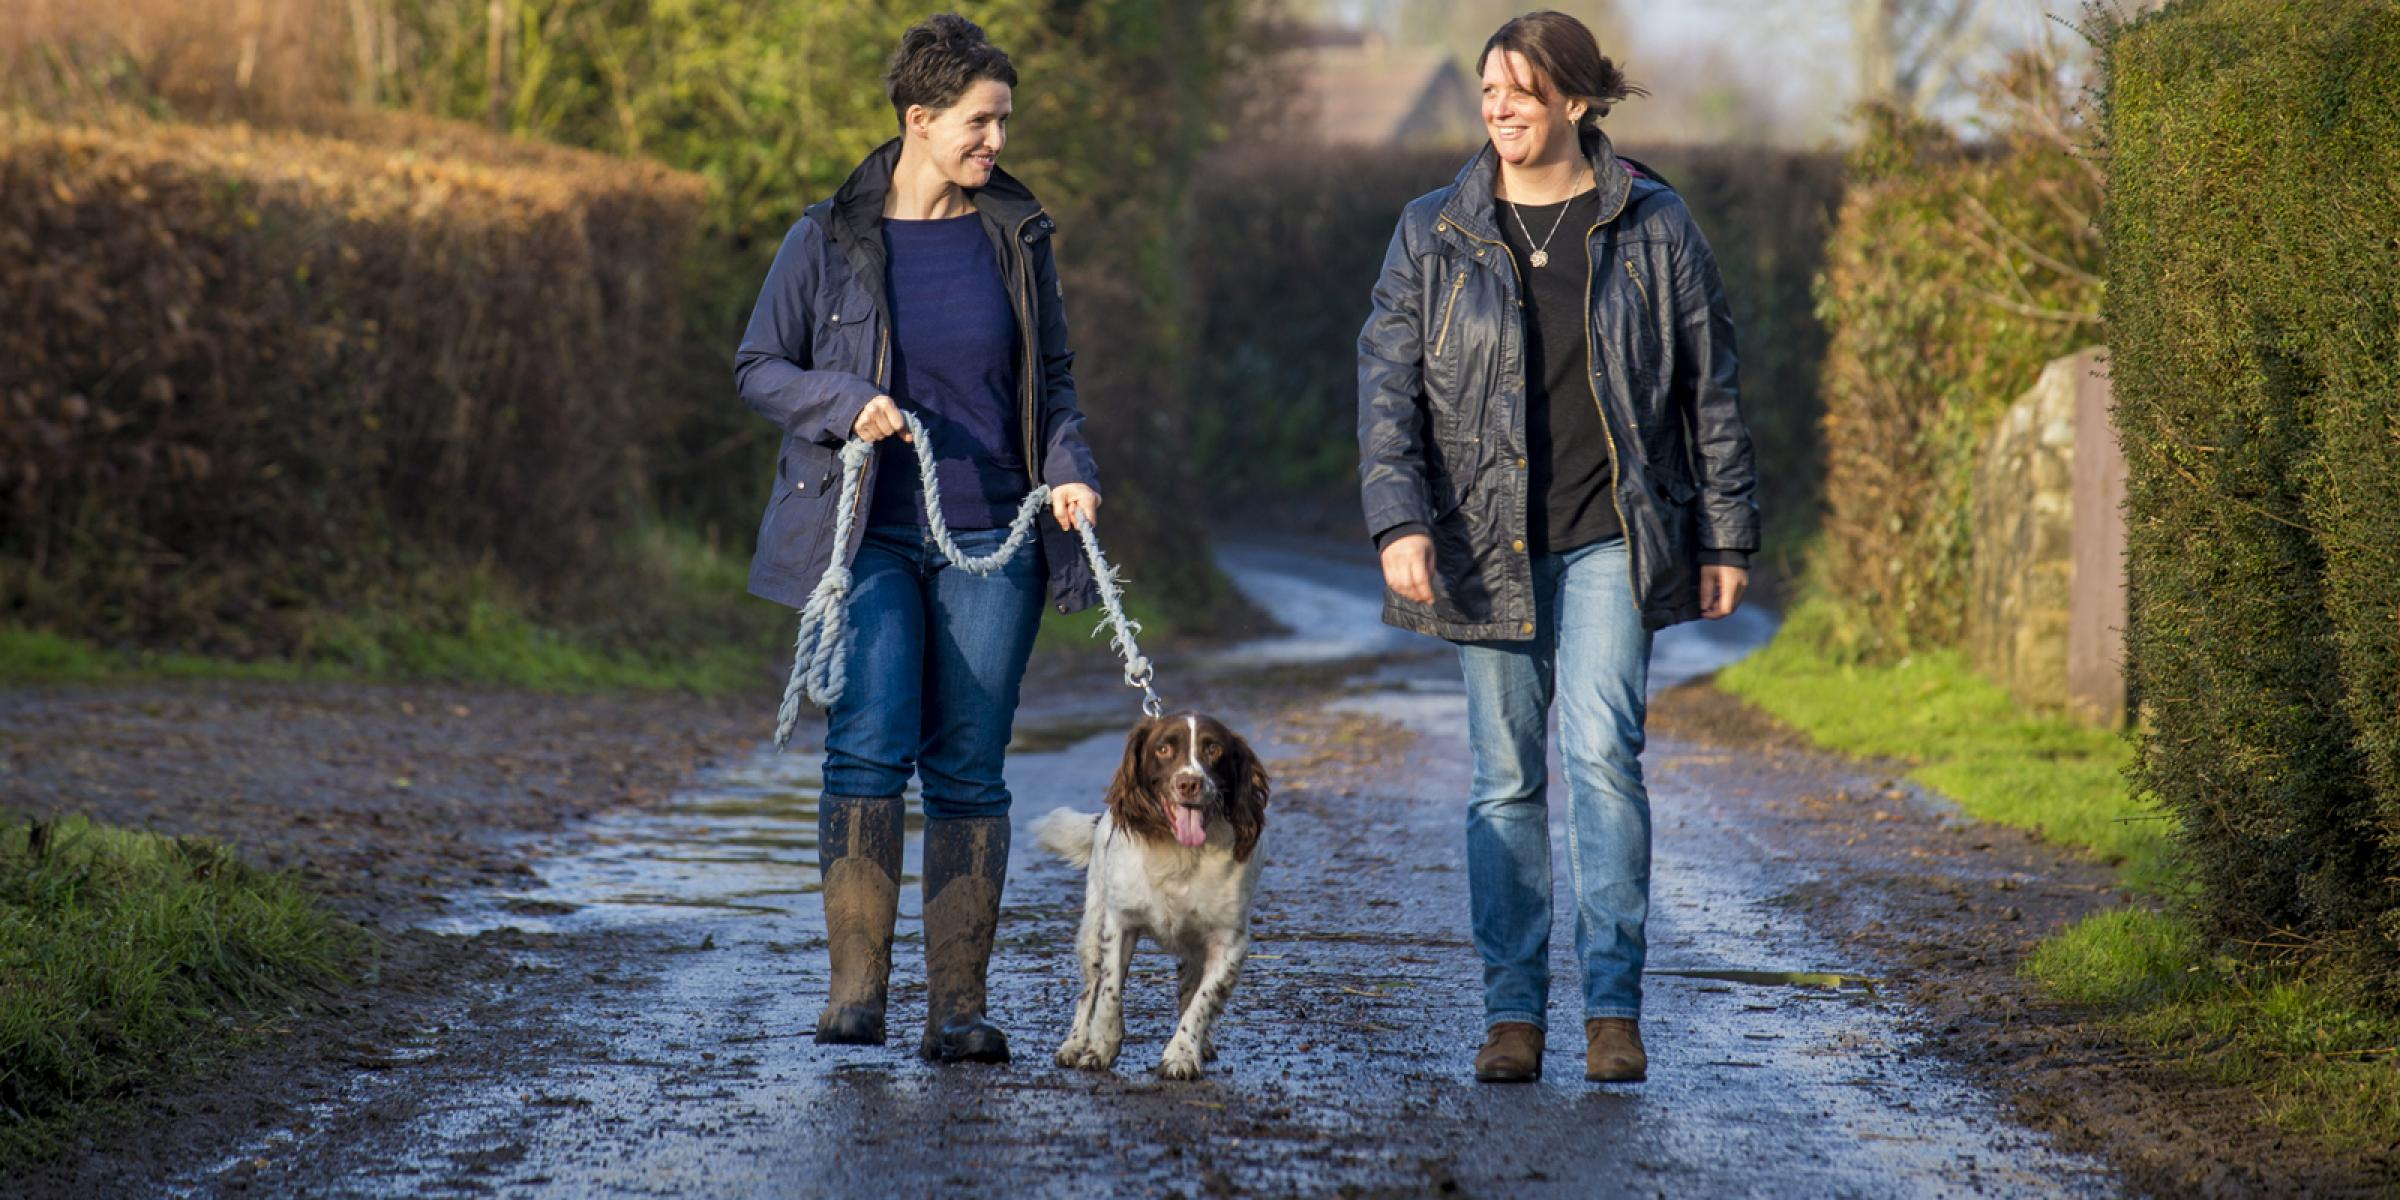 Karenza Frear out with her sister and dog.